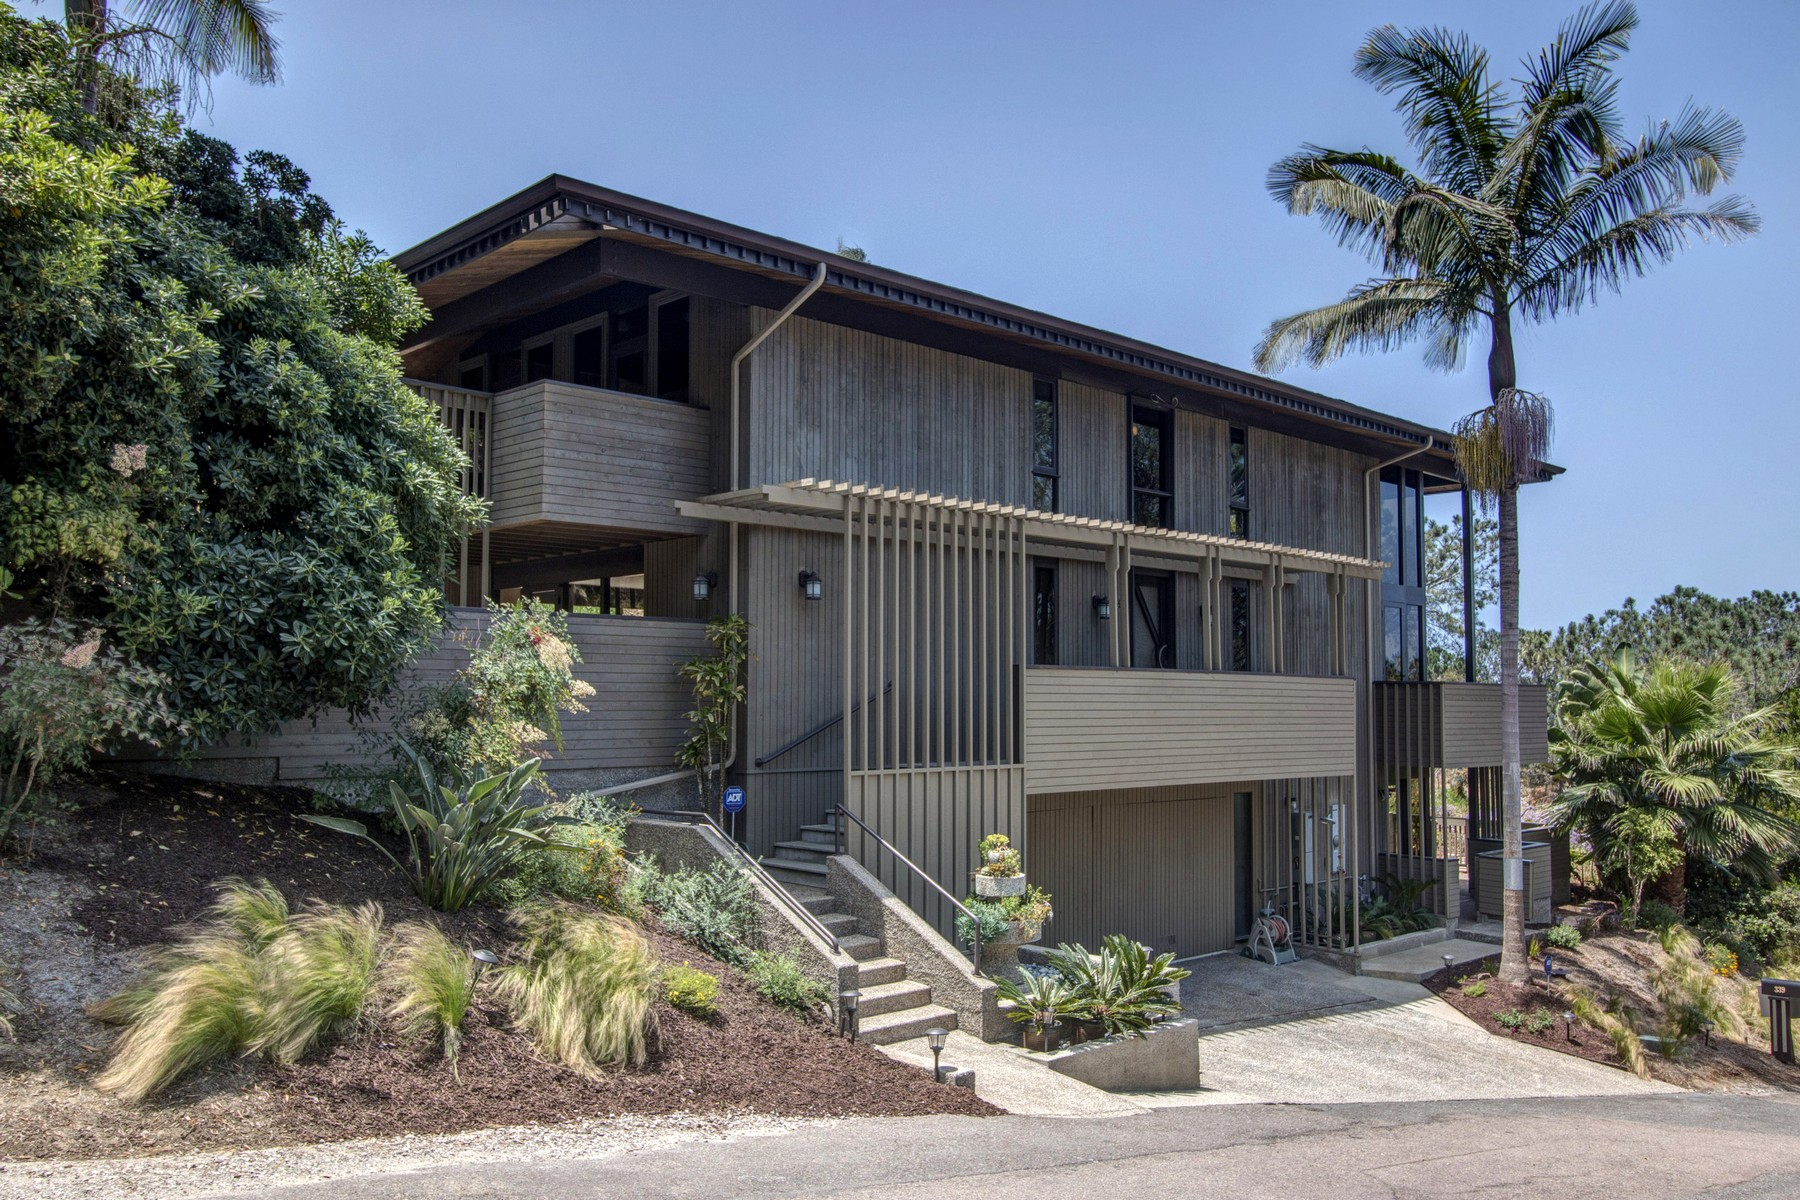 Single Family Home for Sale at 339 Hidden Pines Road Del Mar, California, 92014 United States